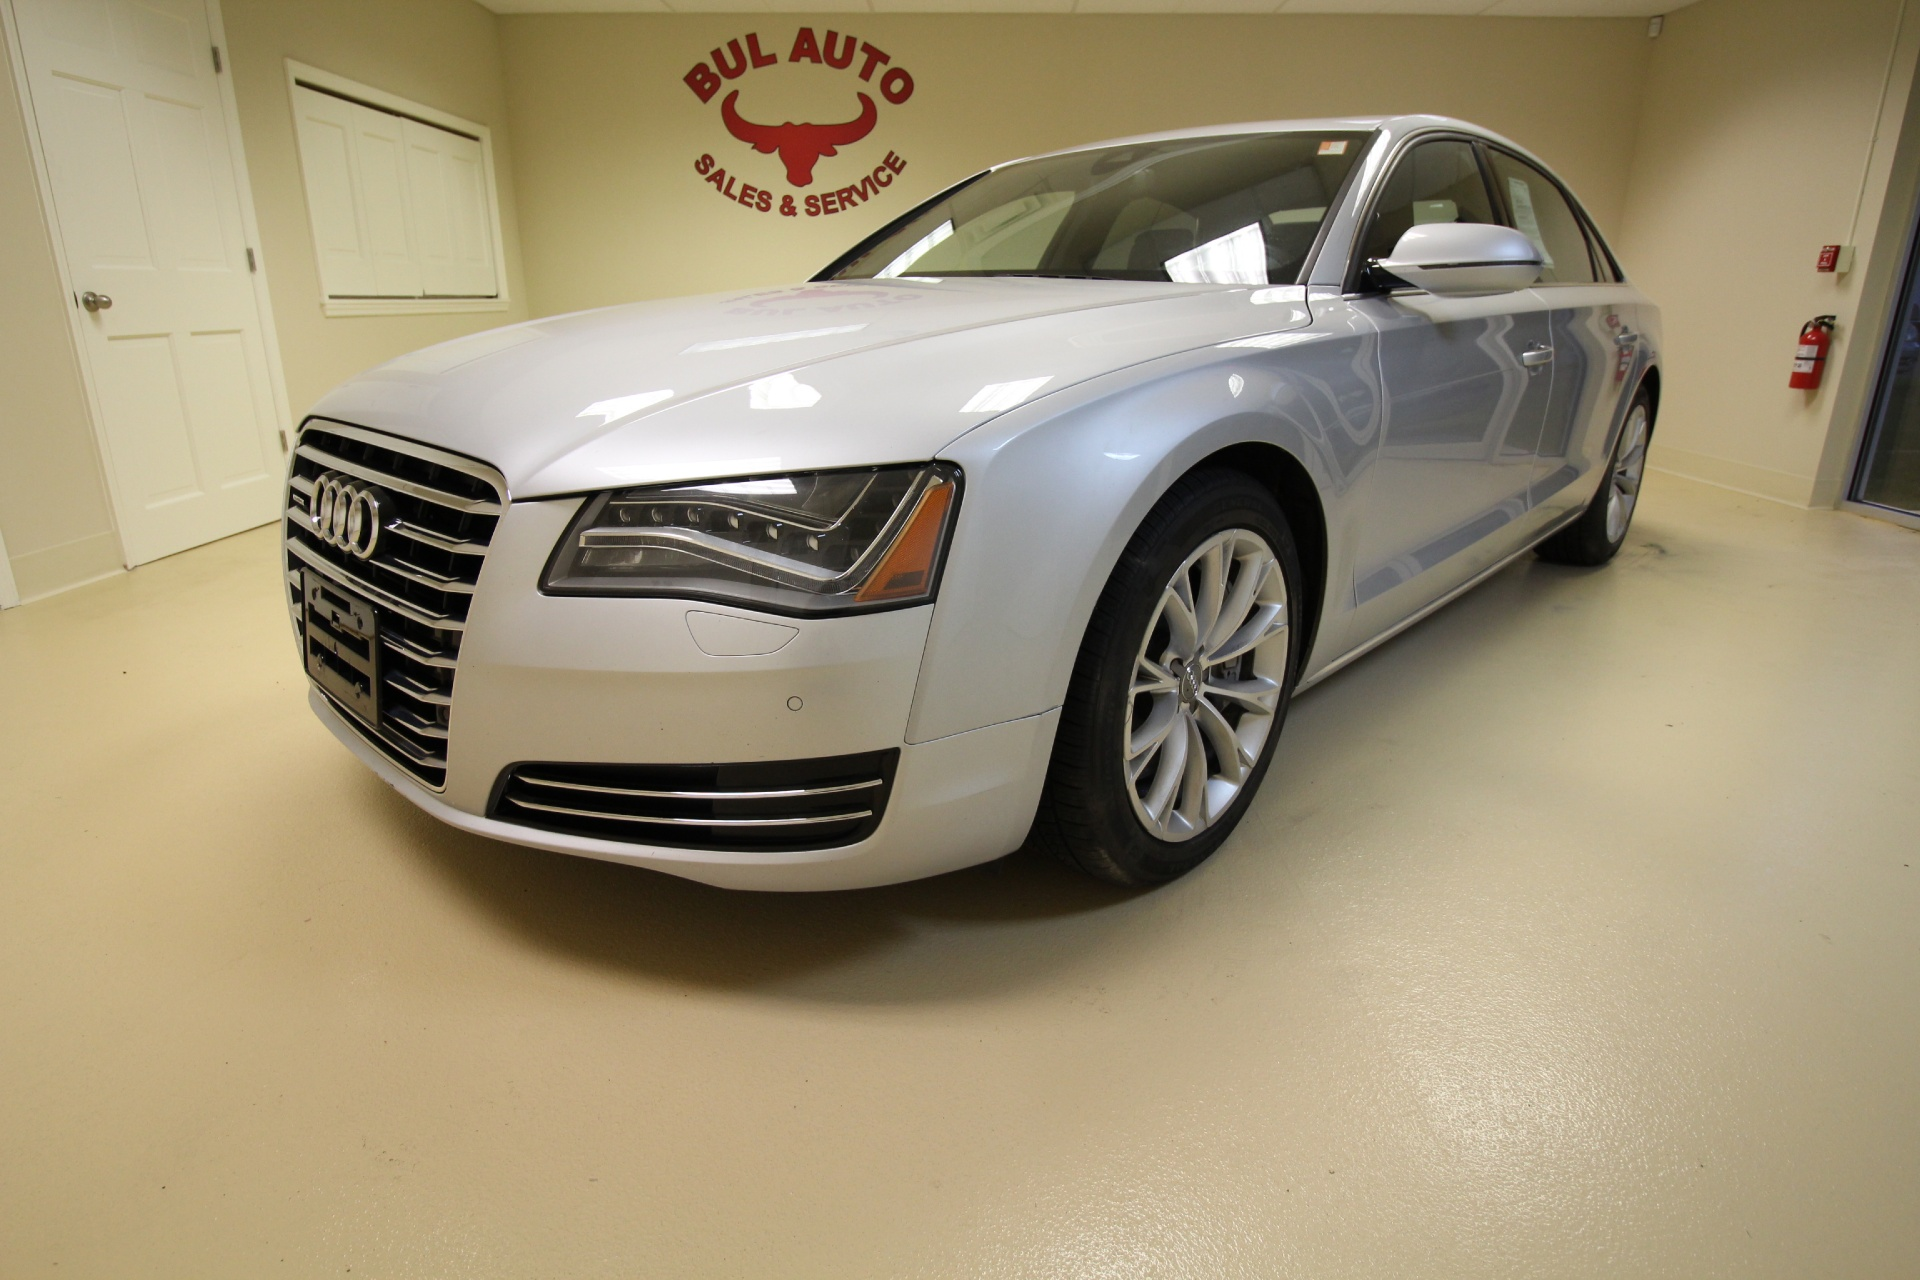 2011 audi a8 4 2l quattro stock 17033 for sale near albany ny ny audi dealer for sale in. Black Bedroom Furniture Sets. Home Design Ideas